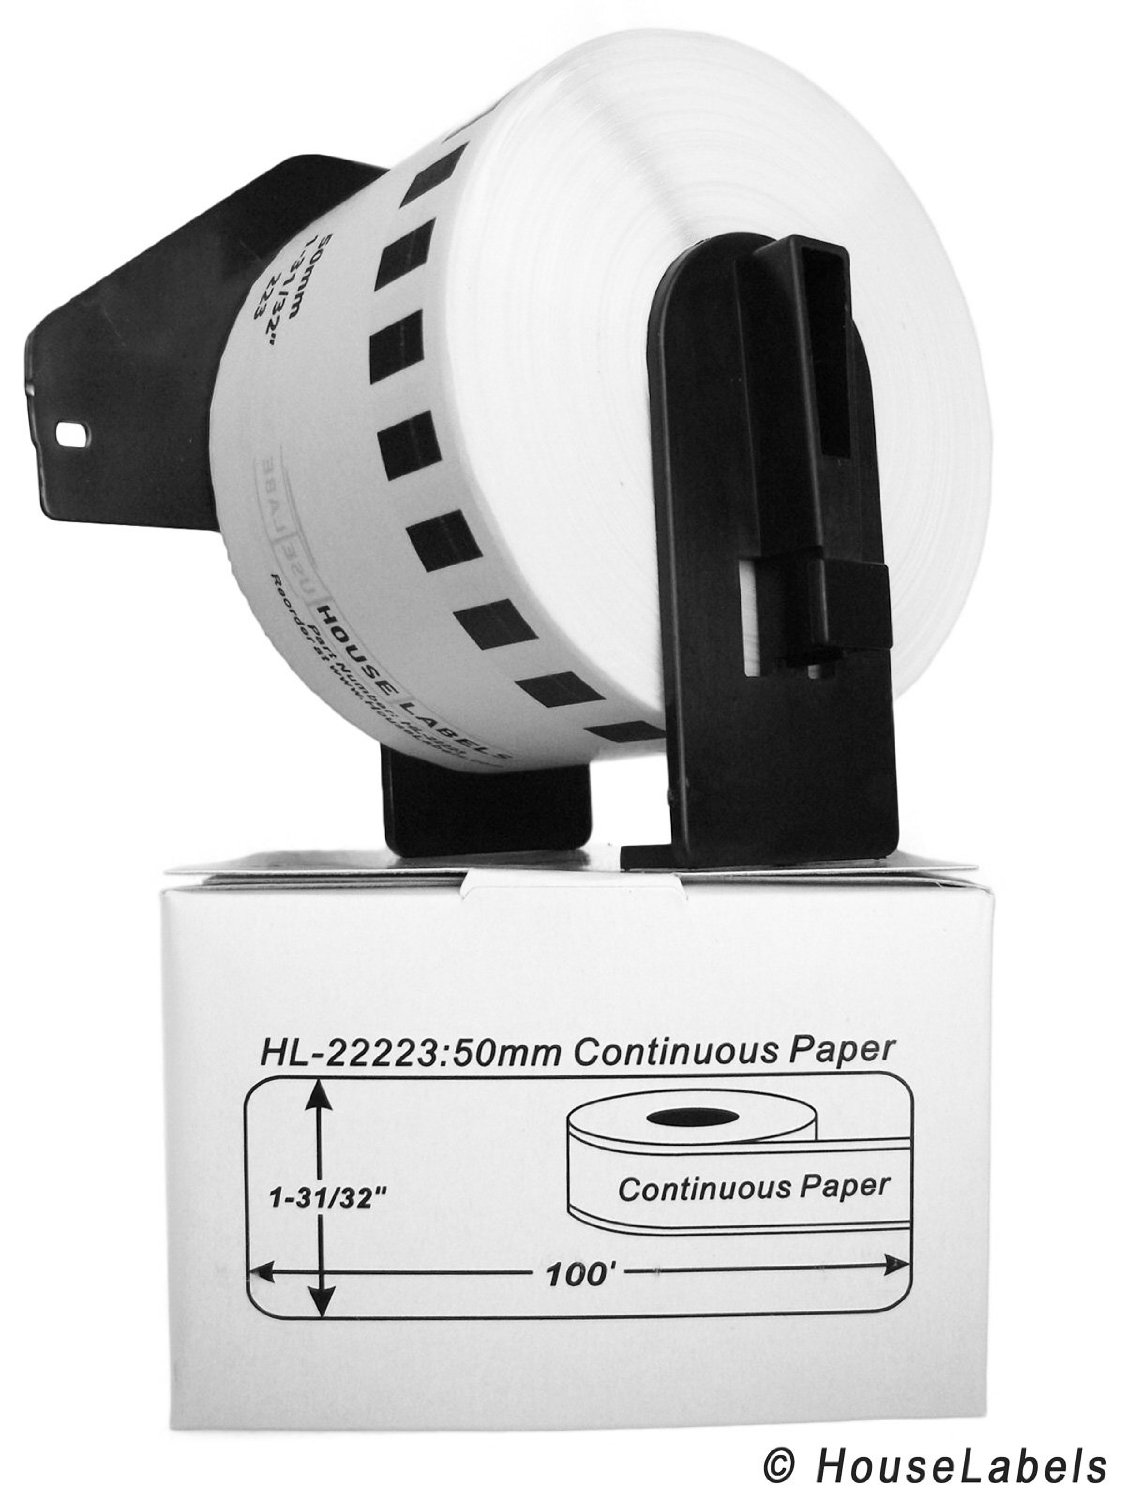 "22 Rolls; Continuous Paper, BROTHER-Compatible DK-2223 Continuous Paper Labels with ONE (1) reusable cartridge (1-31/32"" x 100'; 50mm30.48m) -- BPA Free!"